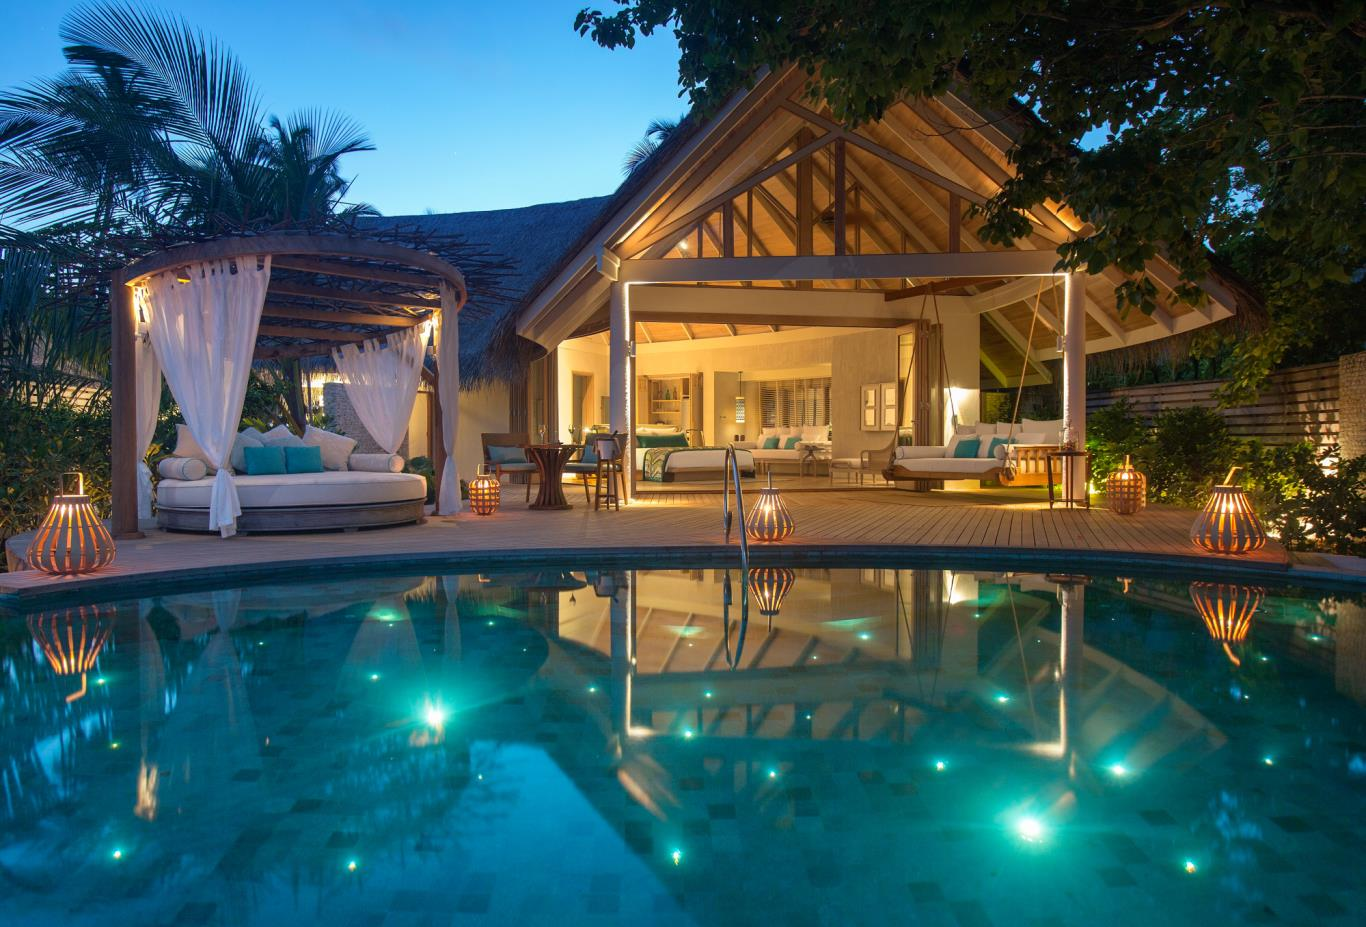 Beach pool villa night pool